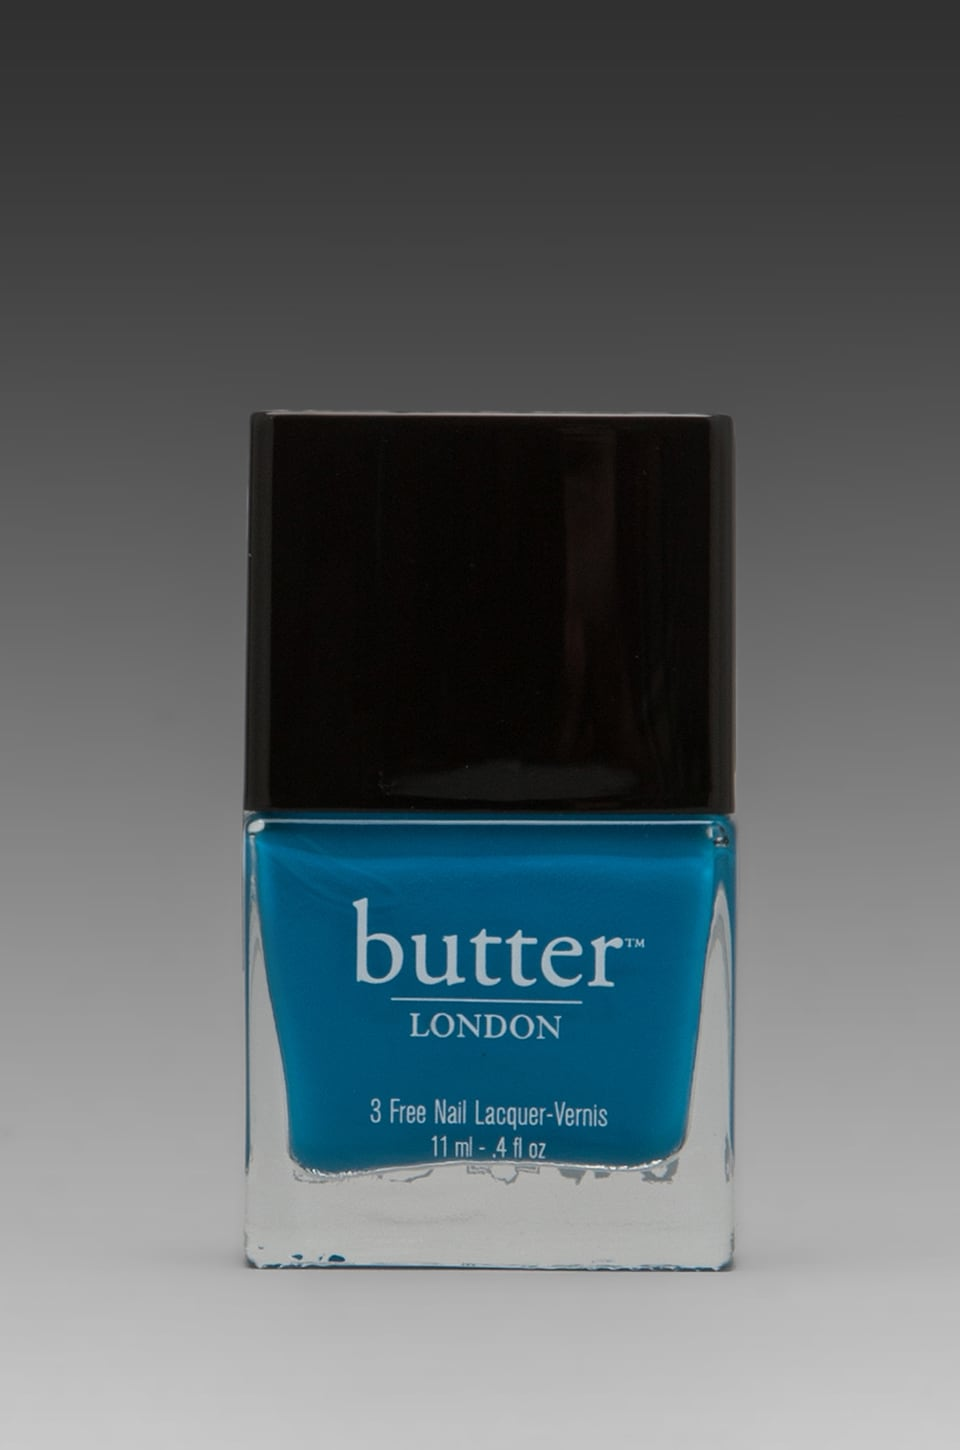 butter LONDON Nail Polish in Keks